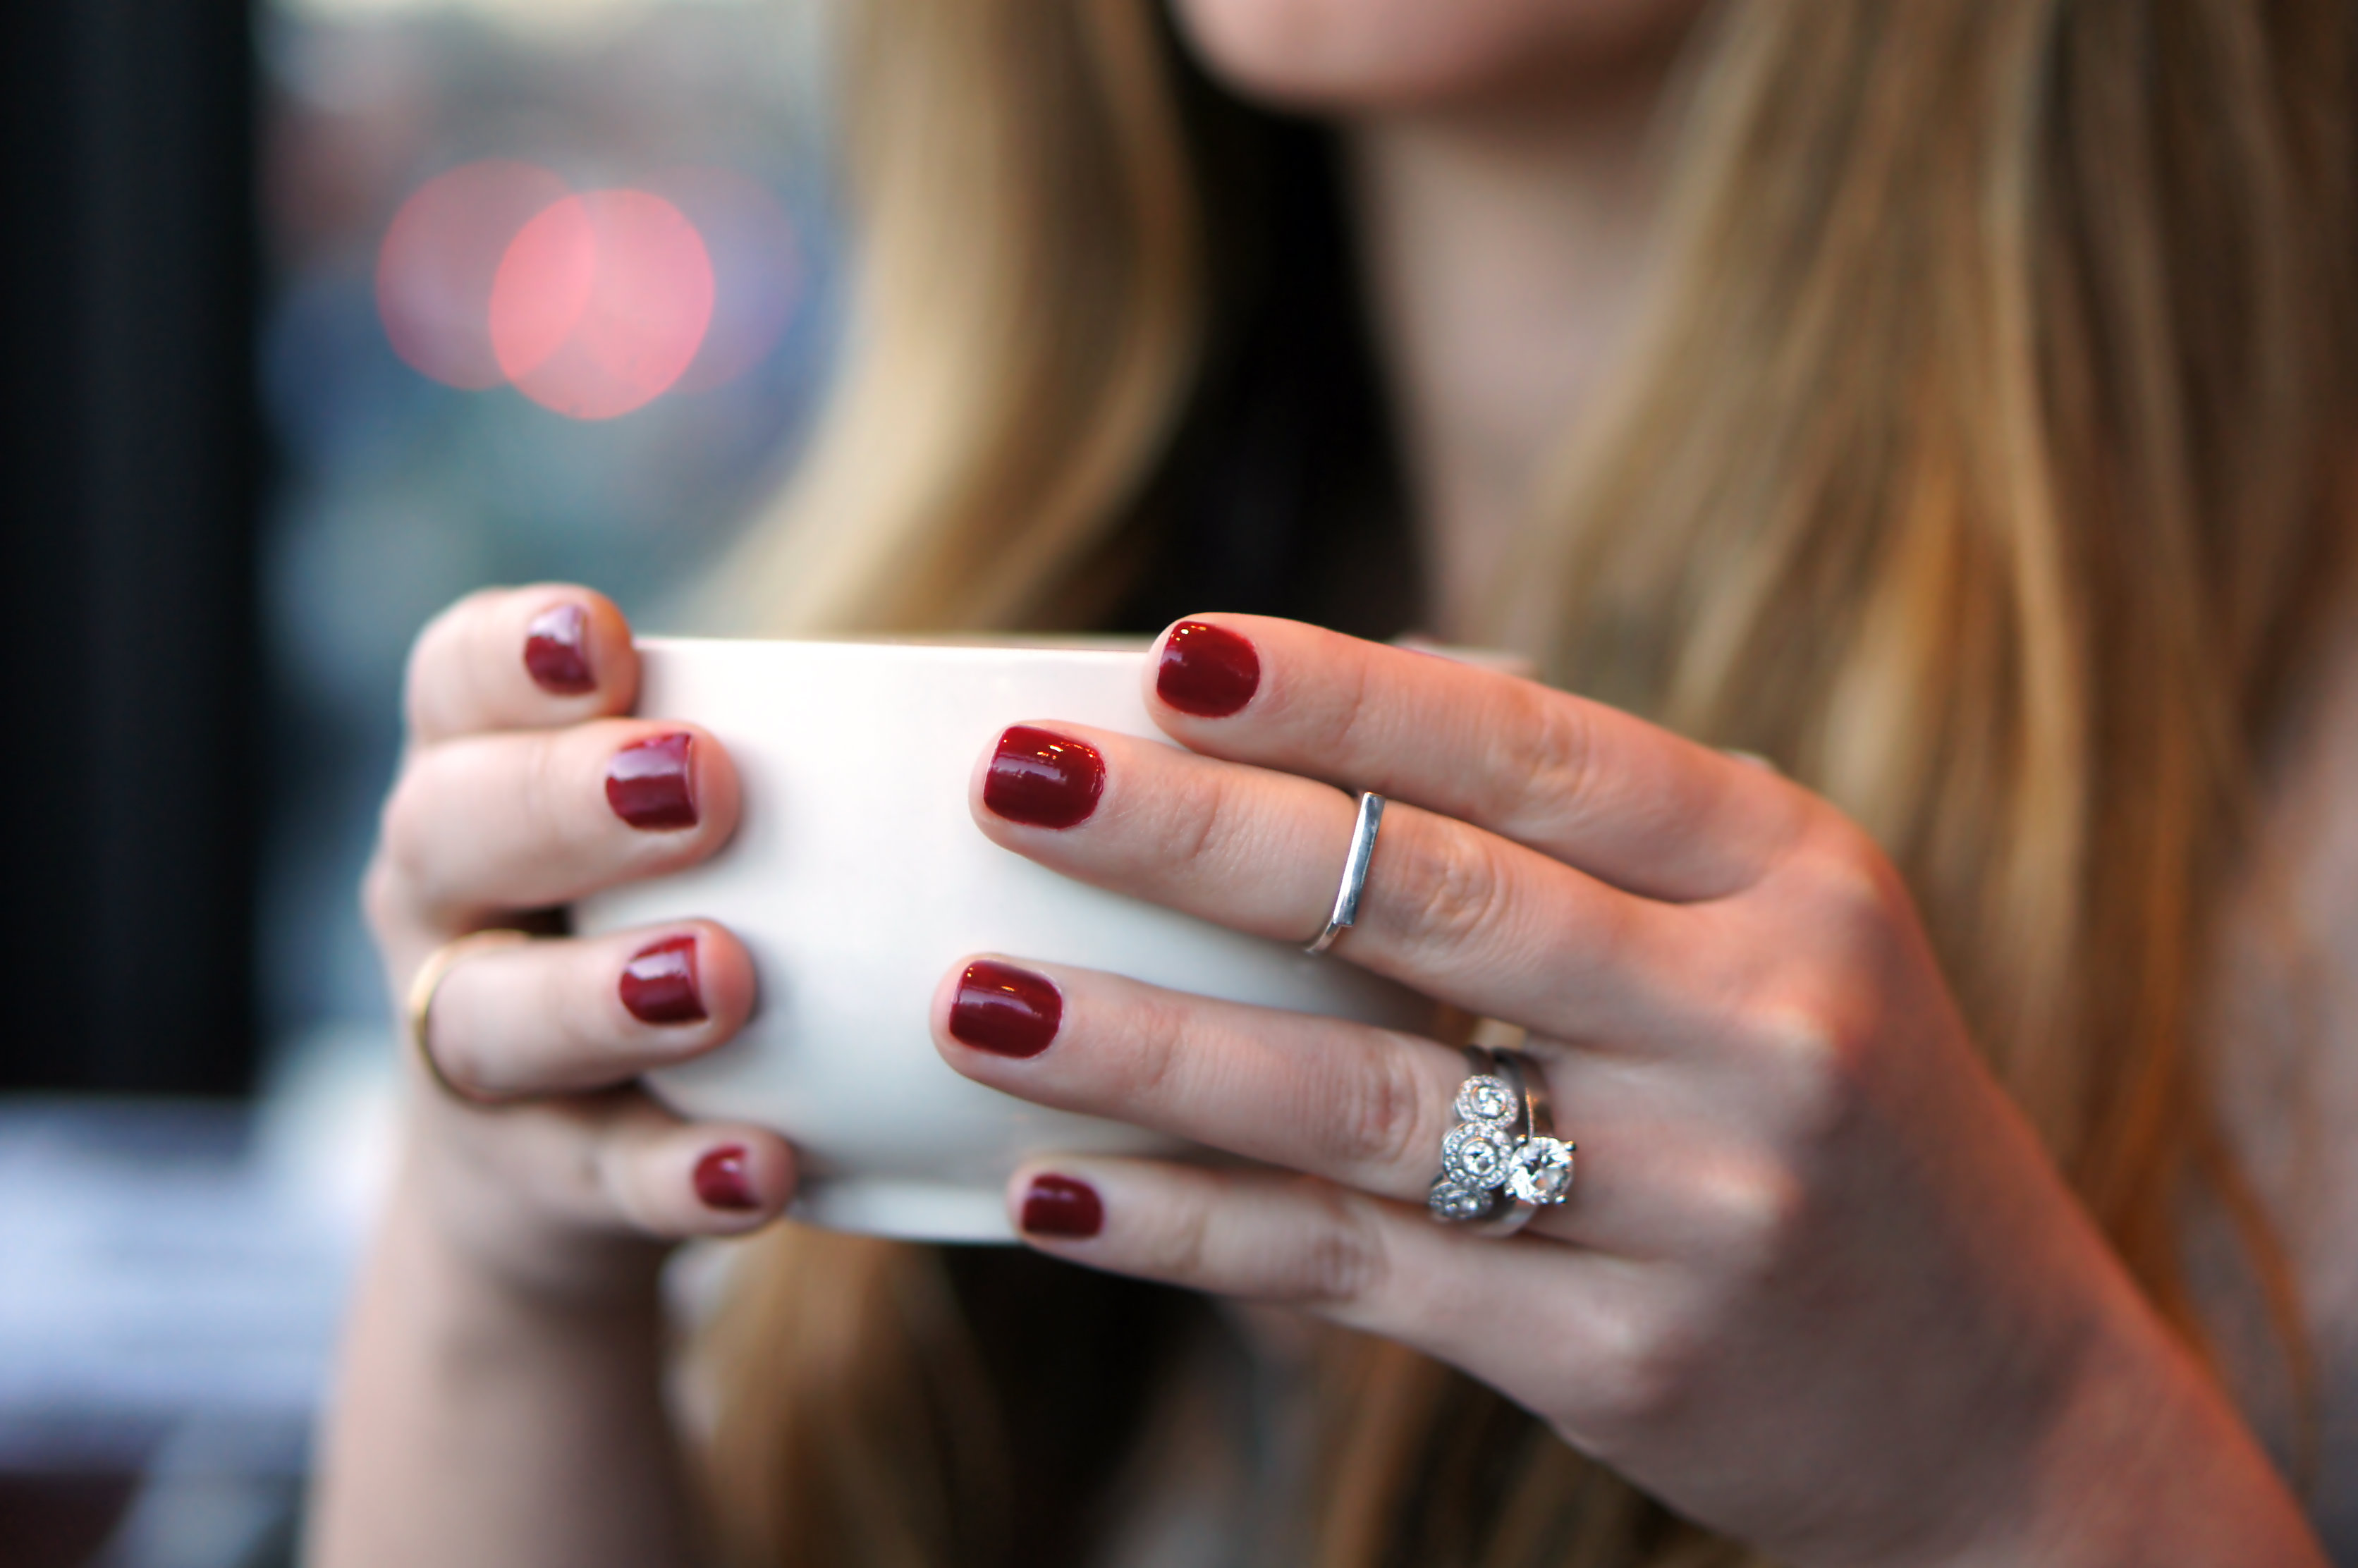 Rings & bordeaux nails